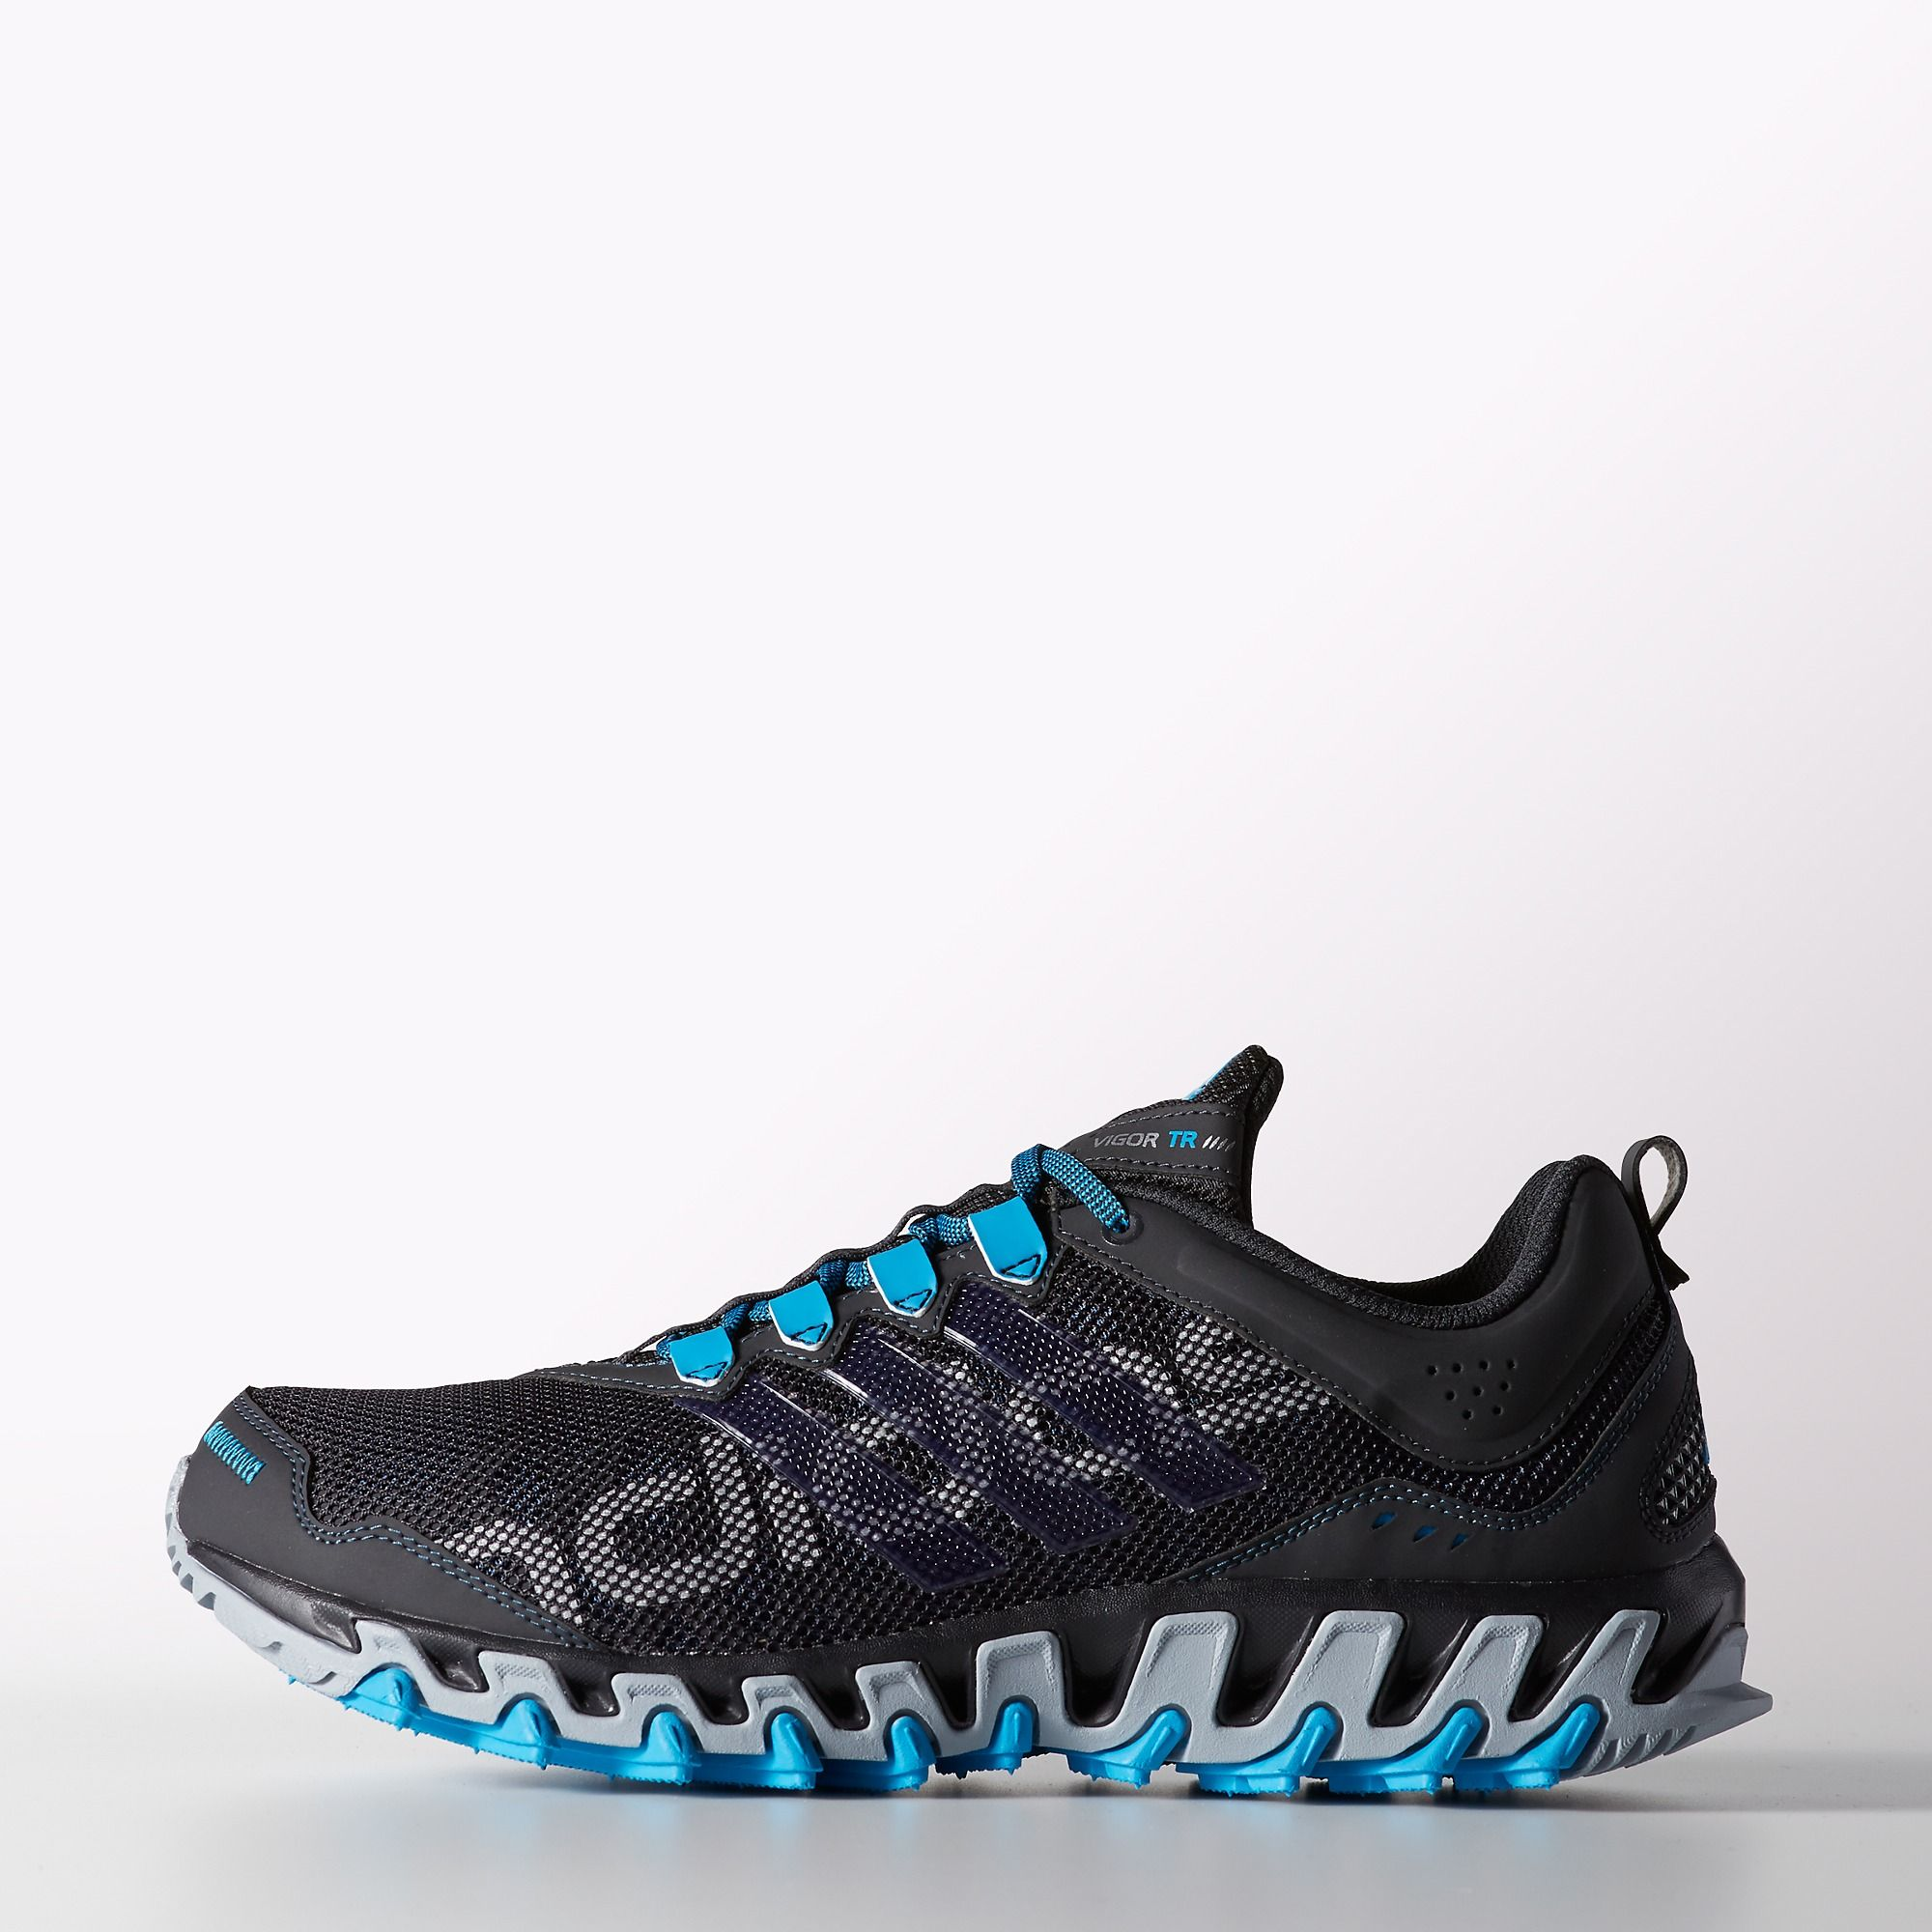 Adidas Vigor 4 Trail Shoes Adidas Us Running Shoes For Men Women Shoes Shoes Heels Vintage